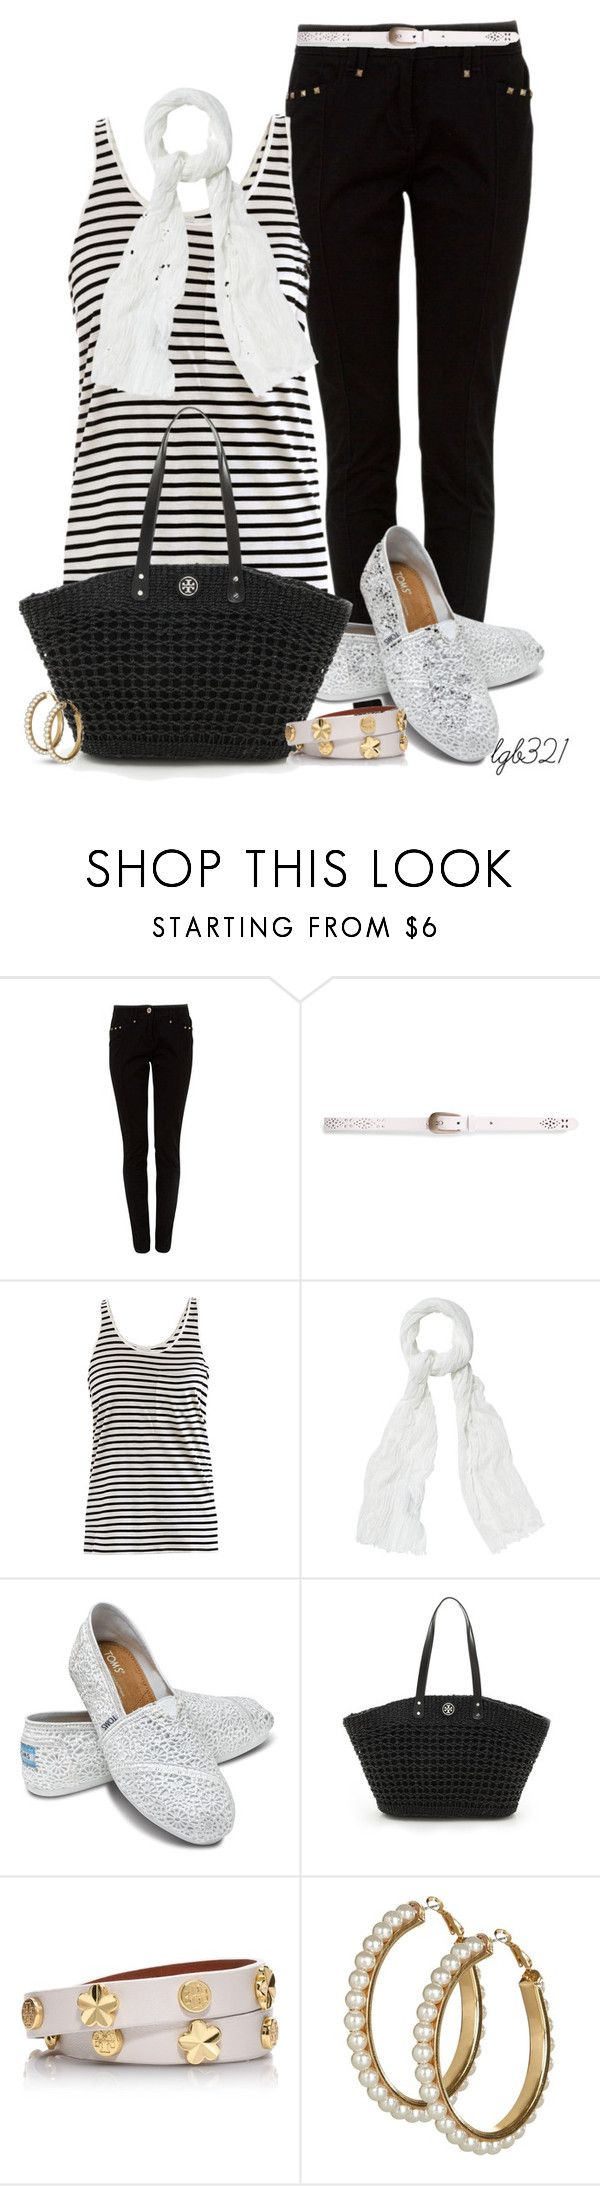 """""""Black & White"""" by lgb321 ❤ liked on Polyvore featuring Pull&Bear, AR SRPLS, Principles by Ben de Lisi, TOMS and Tory Burch"""